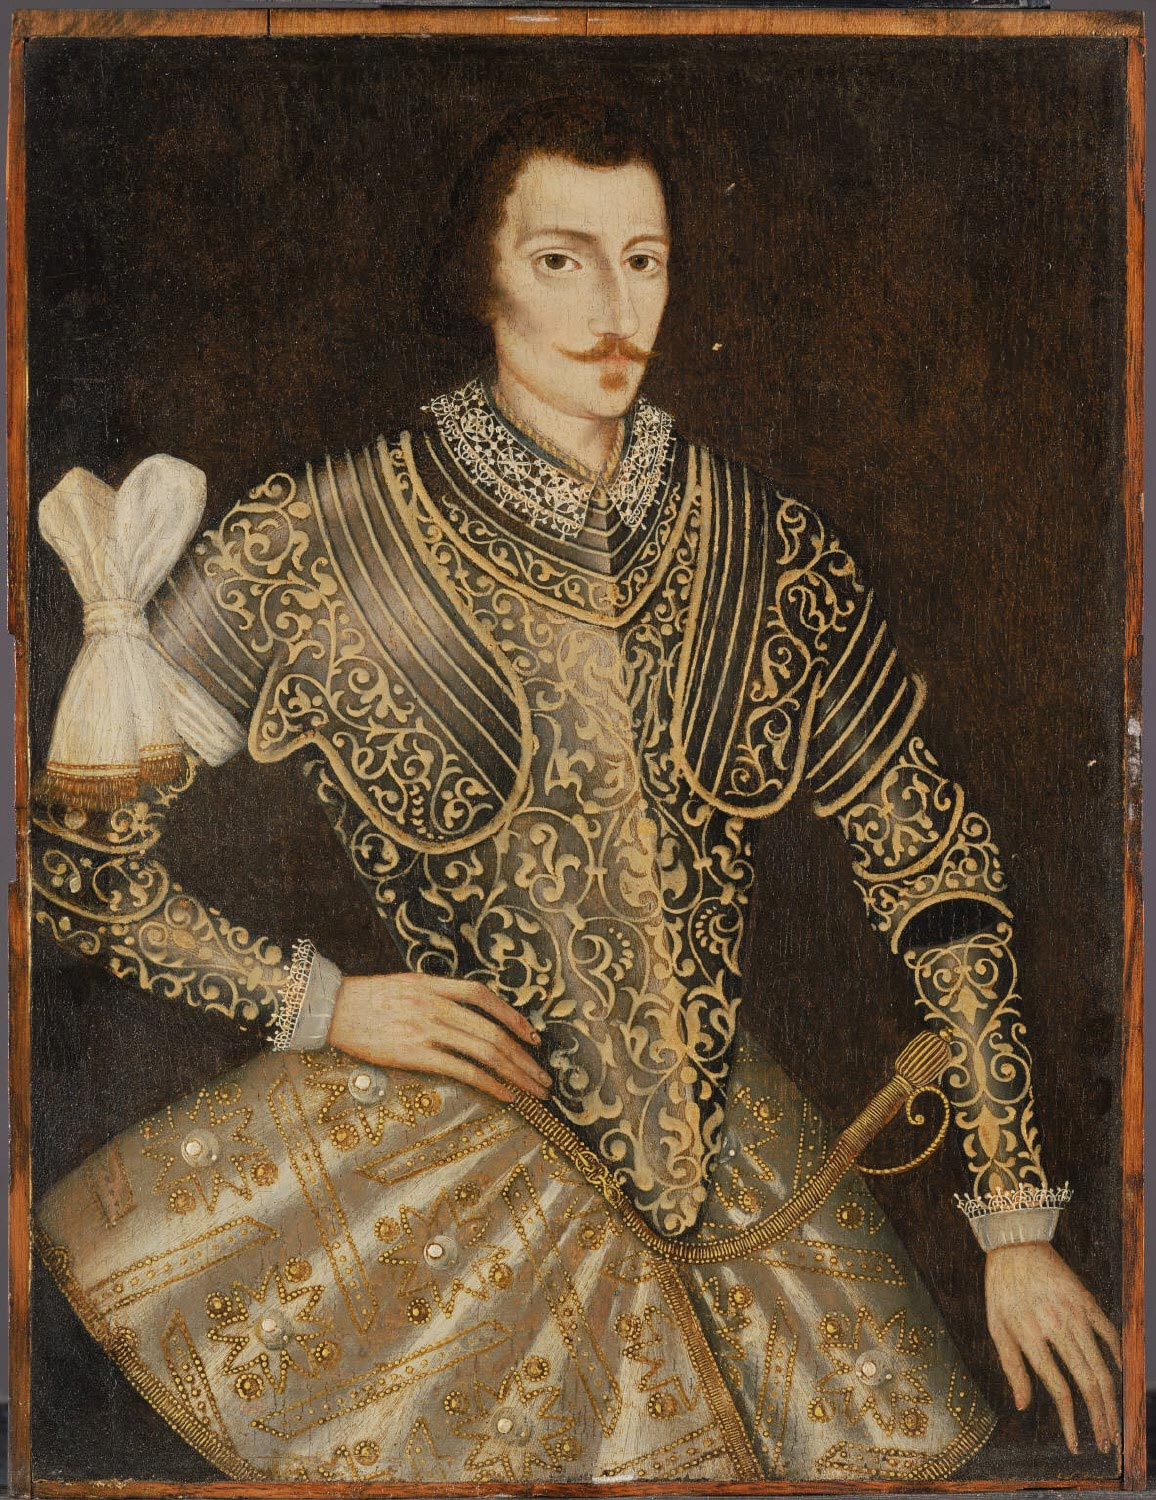 Portrait of a Man in Armor